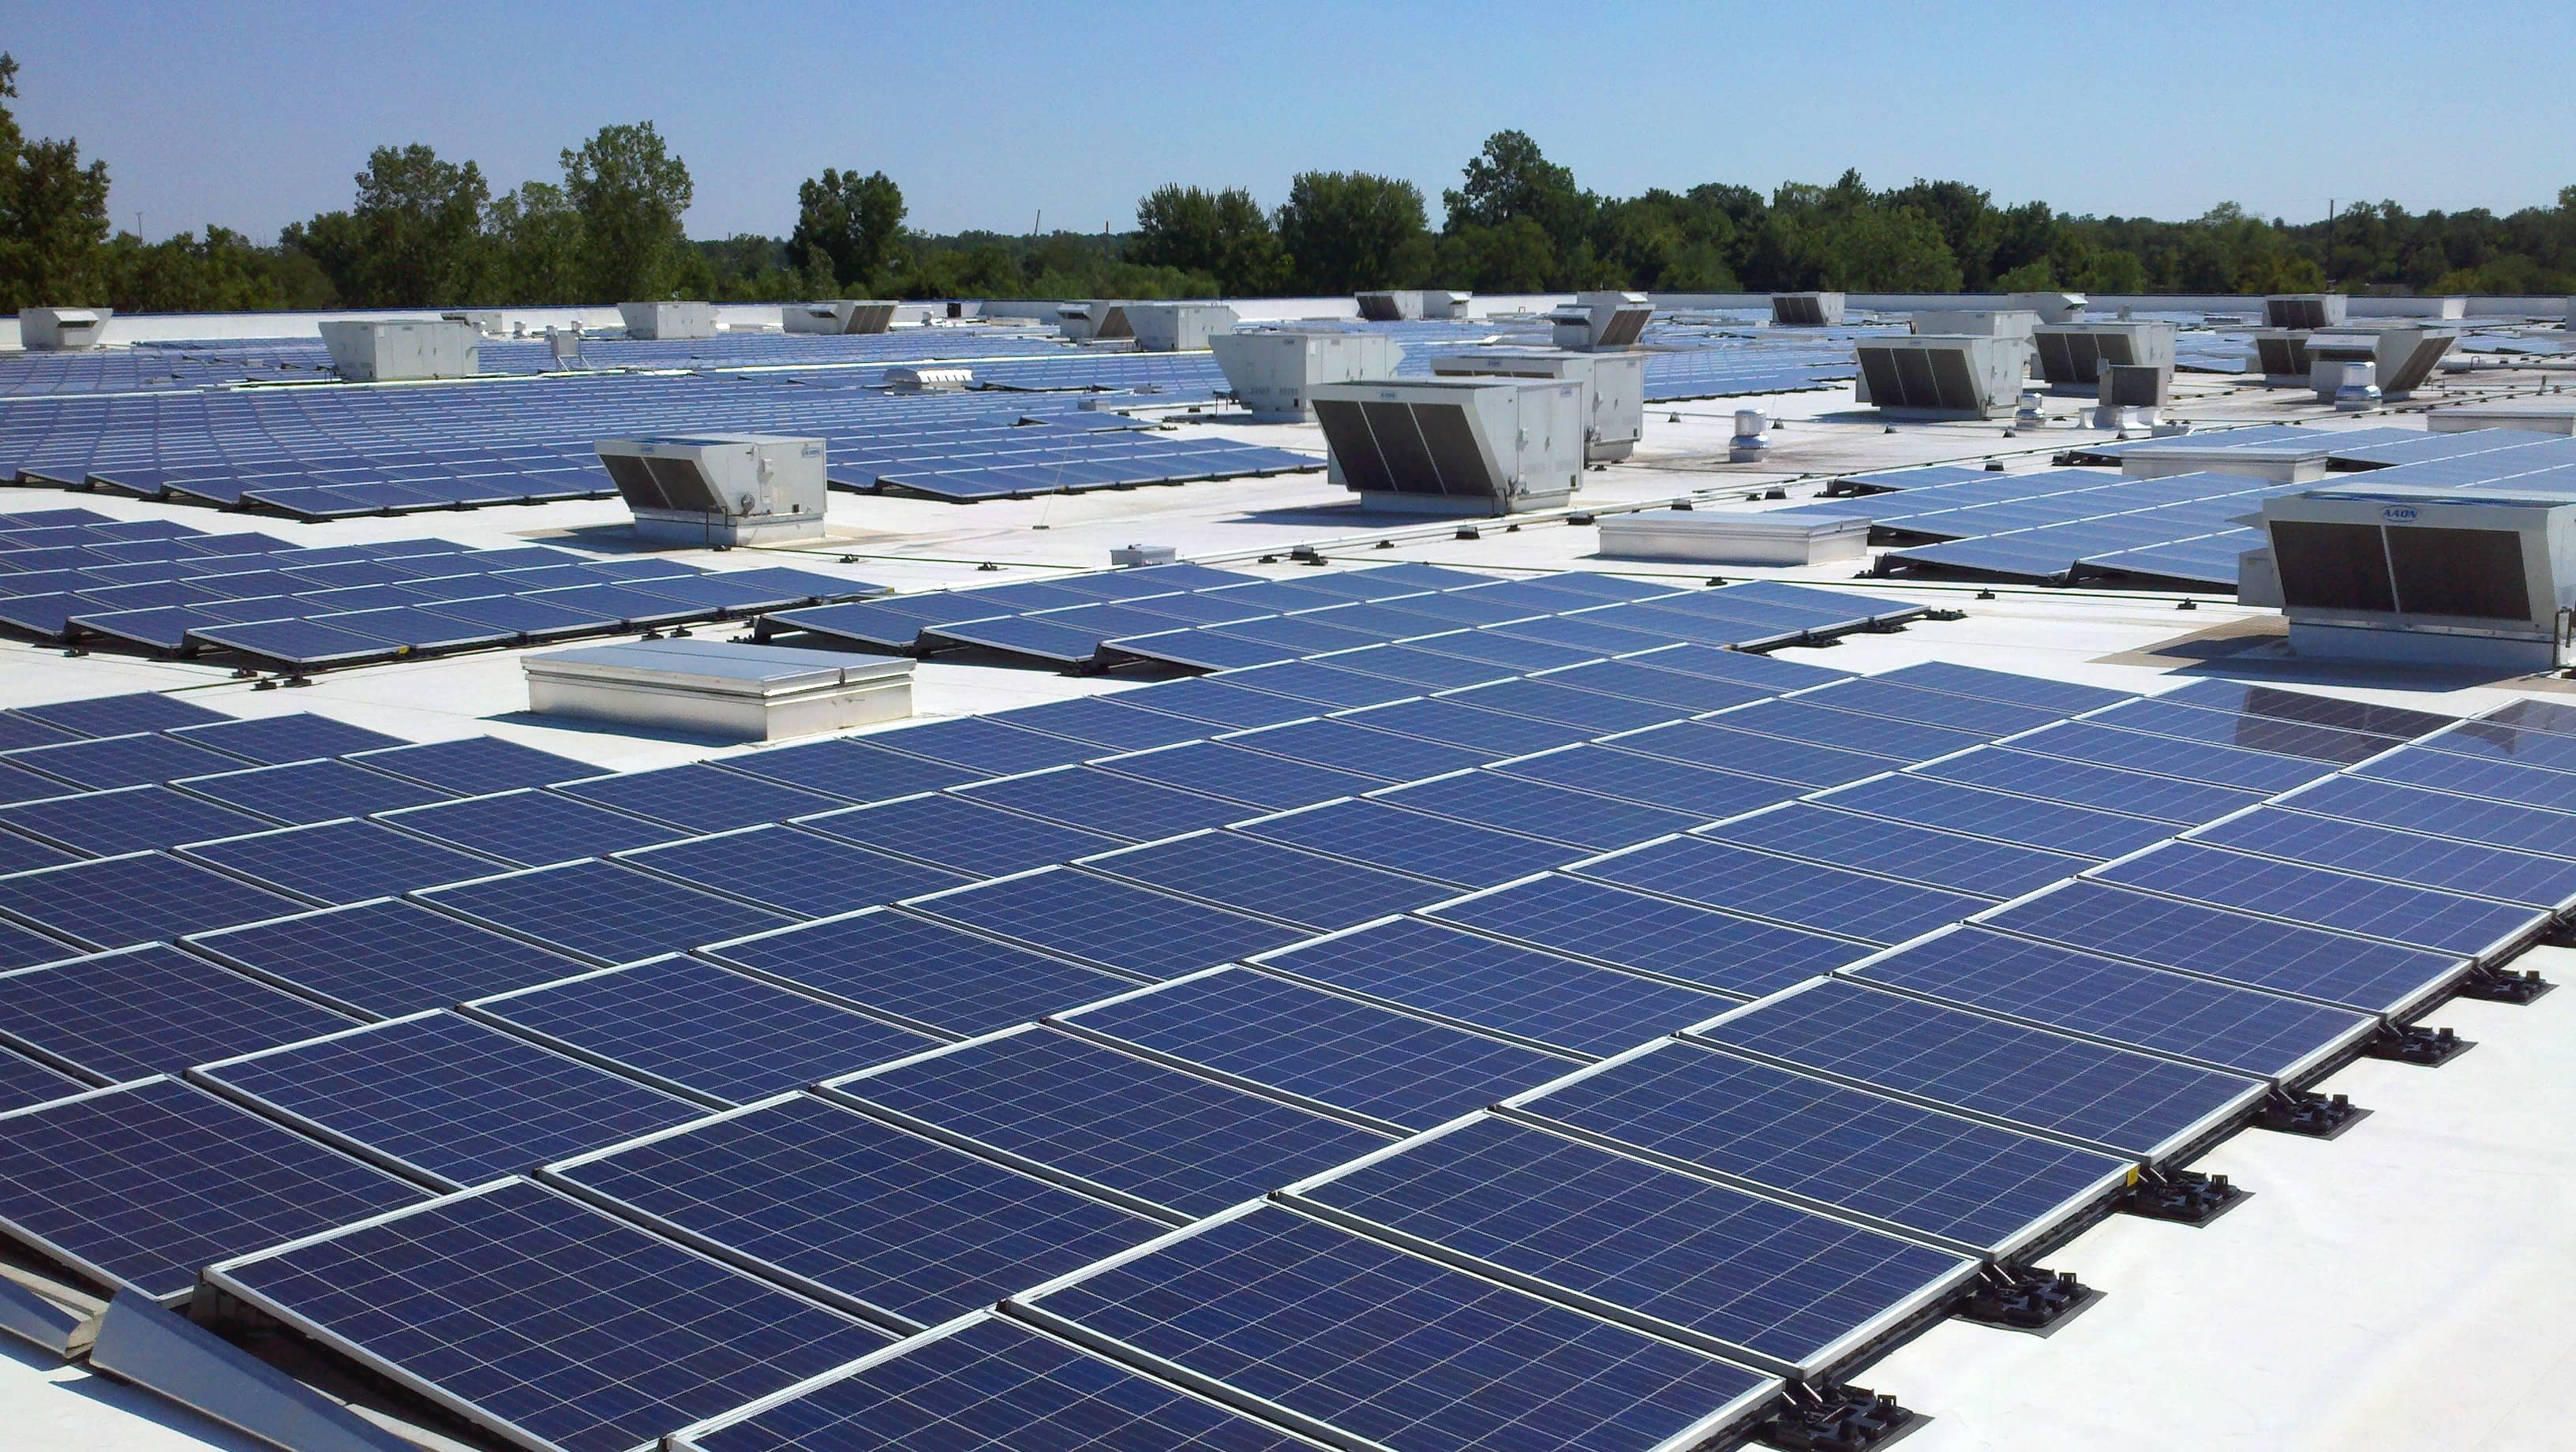 ikea expands rooftop solar array at detroit area store solar industry. Black Bedroom Furniture Sets. Home Design Ideas